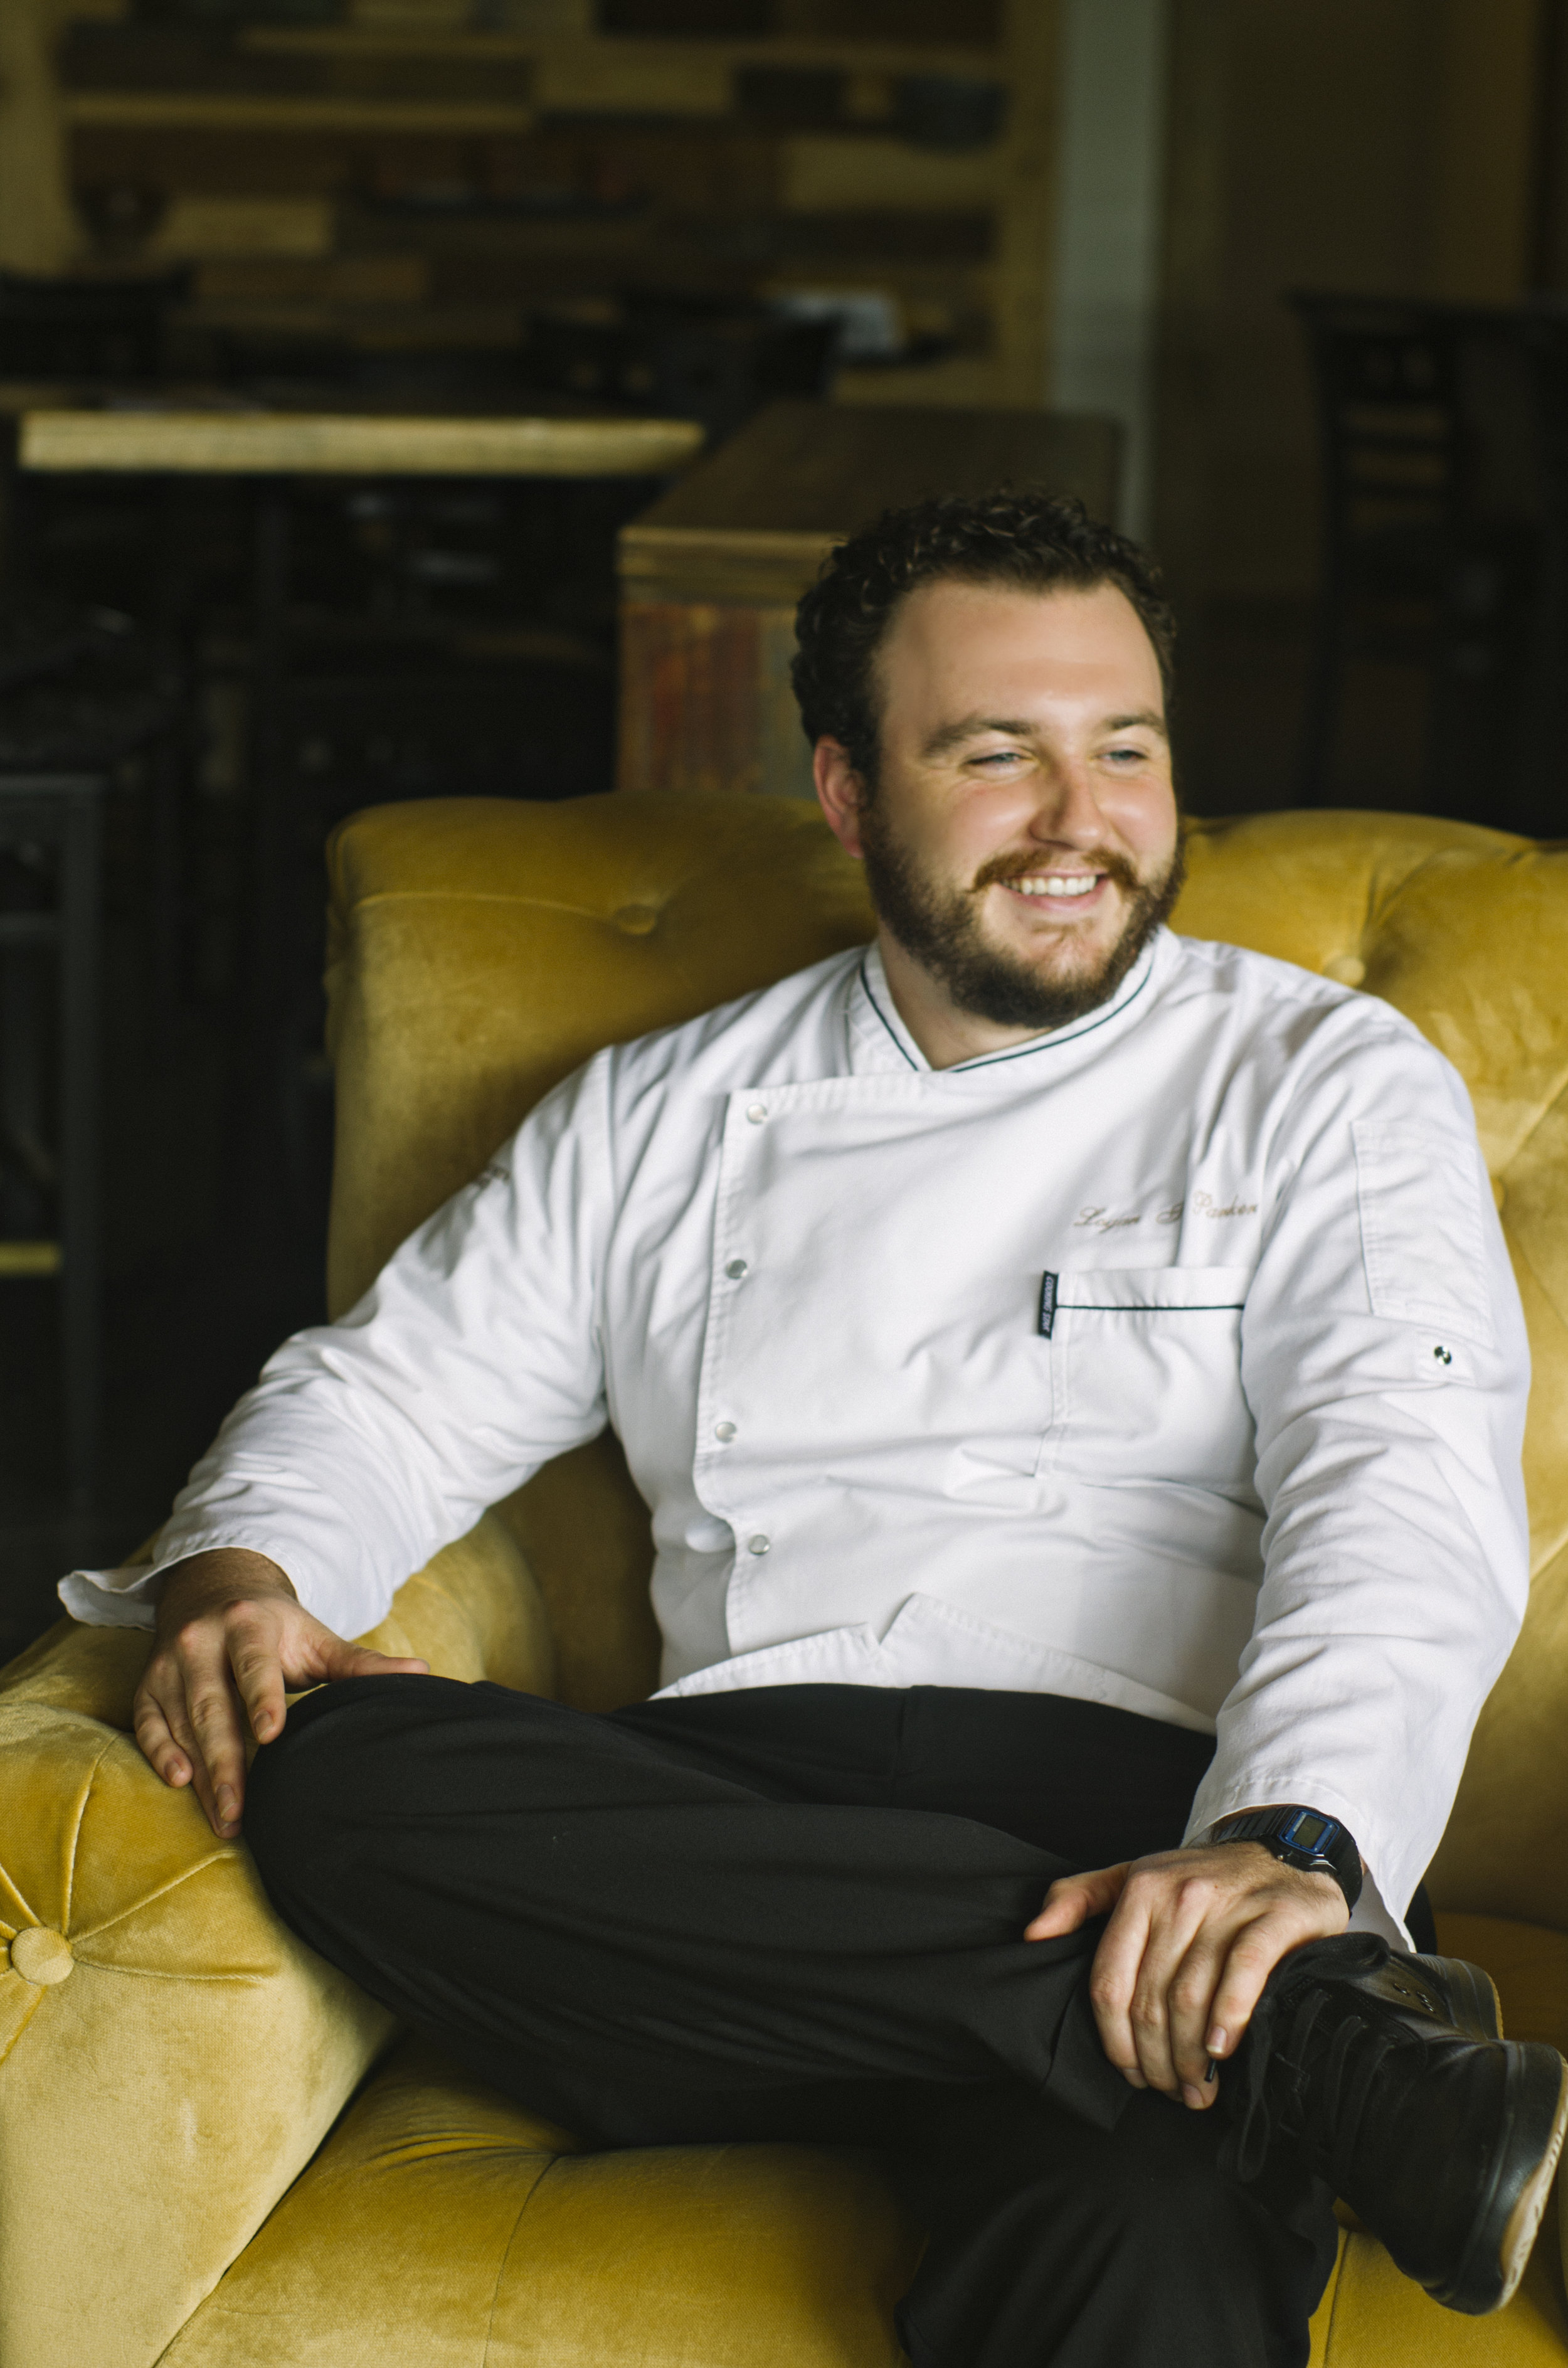 Chef Logan Laughing